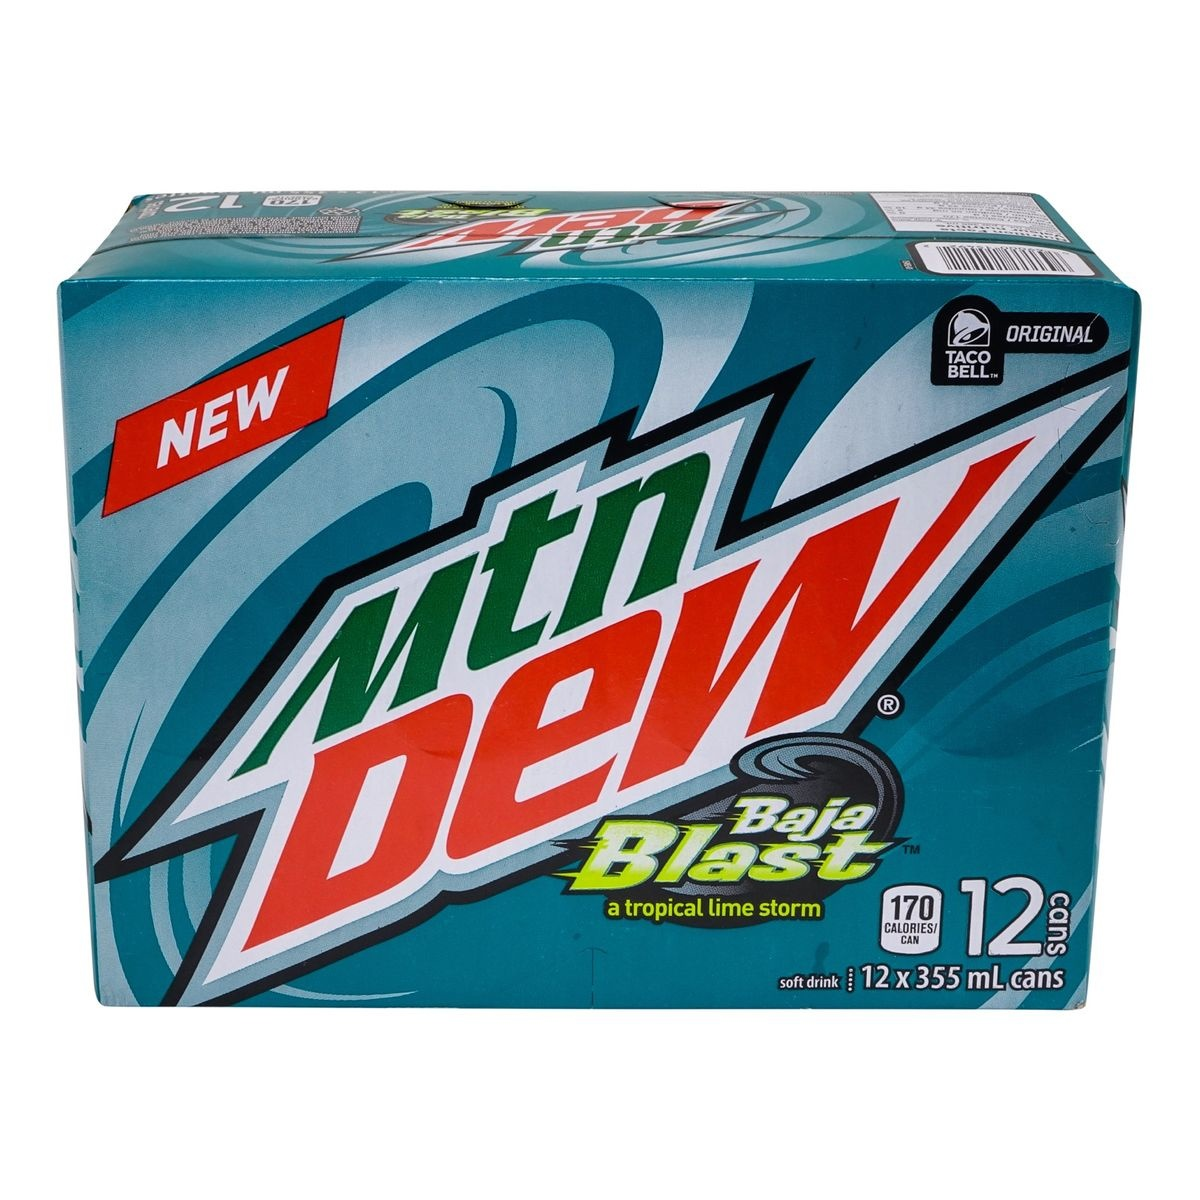 Mountain Dew Mountain Dew - Baja Blast Limited Edition 12-Pack